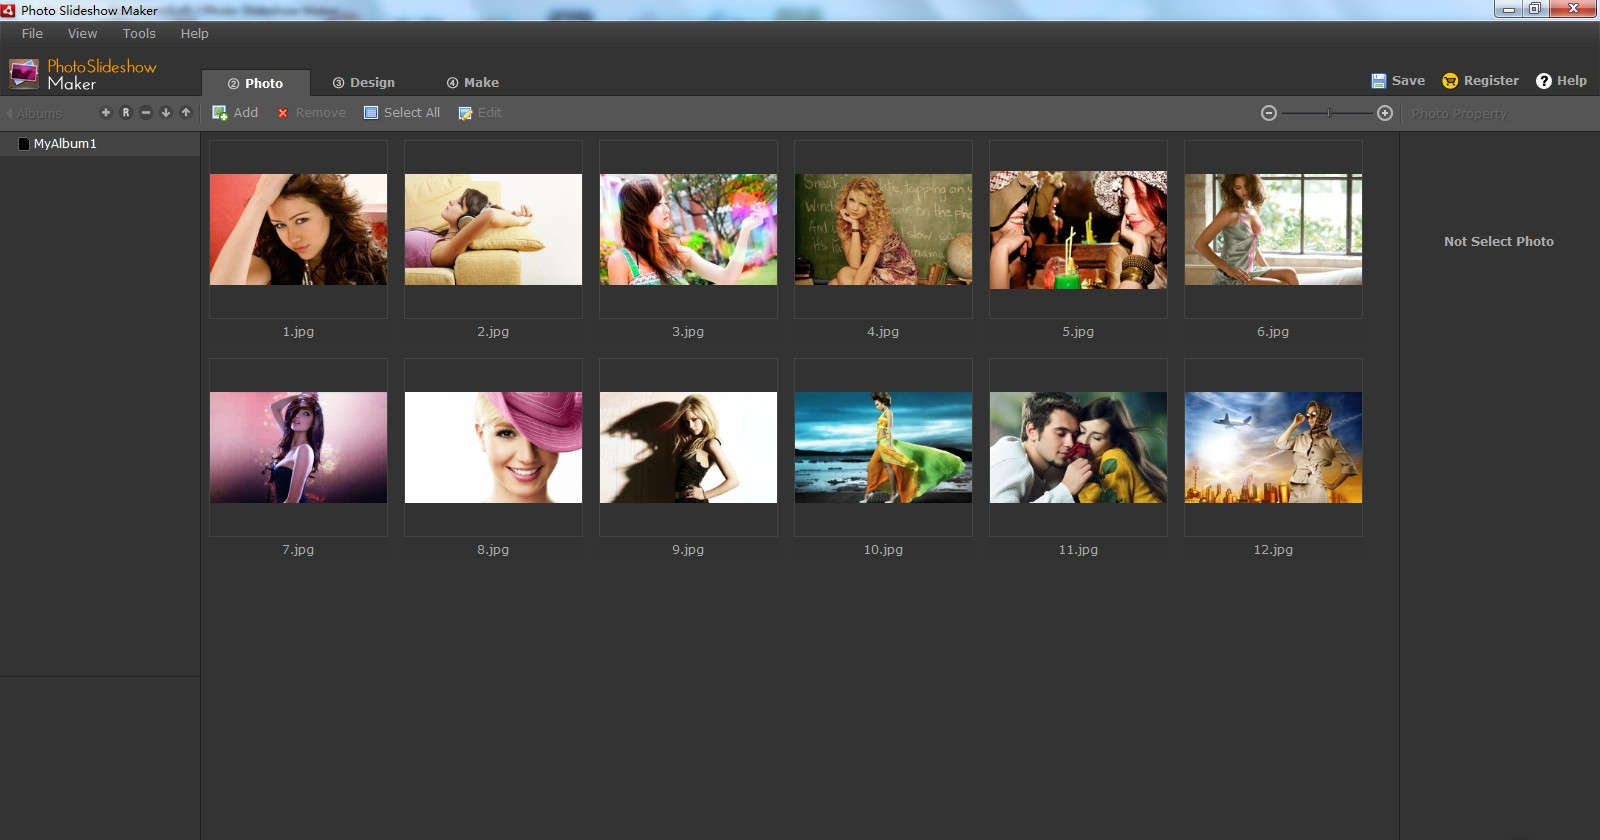 VisionGem Tech - Free Slideshow Maker - A Free Slideshow Free online photo slideshow maker with music